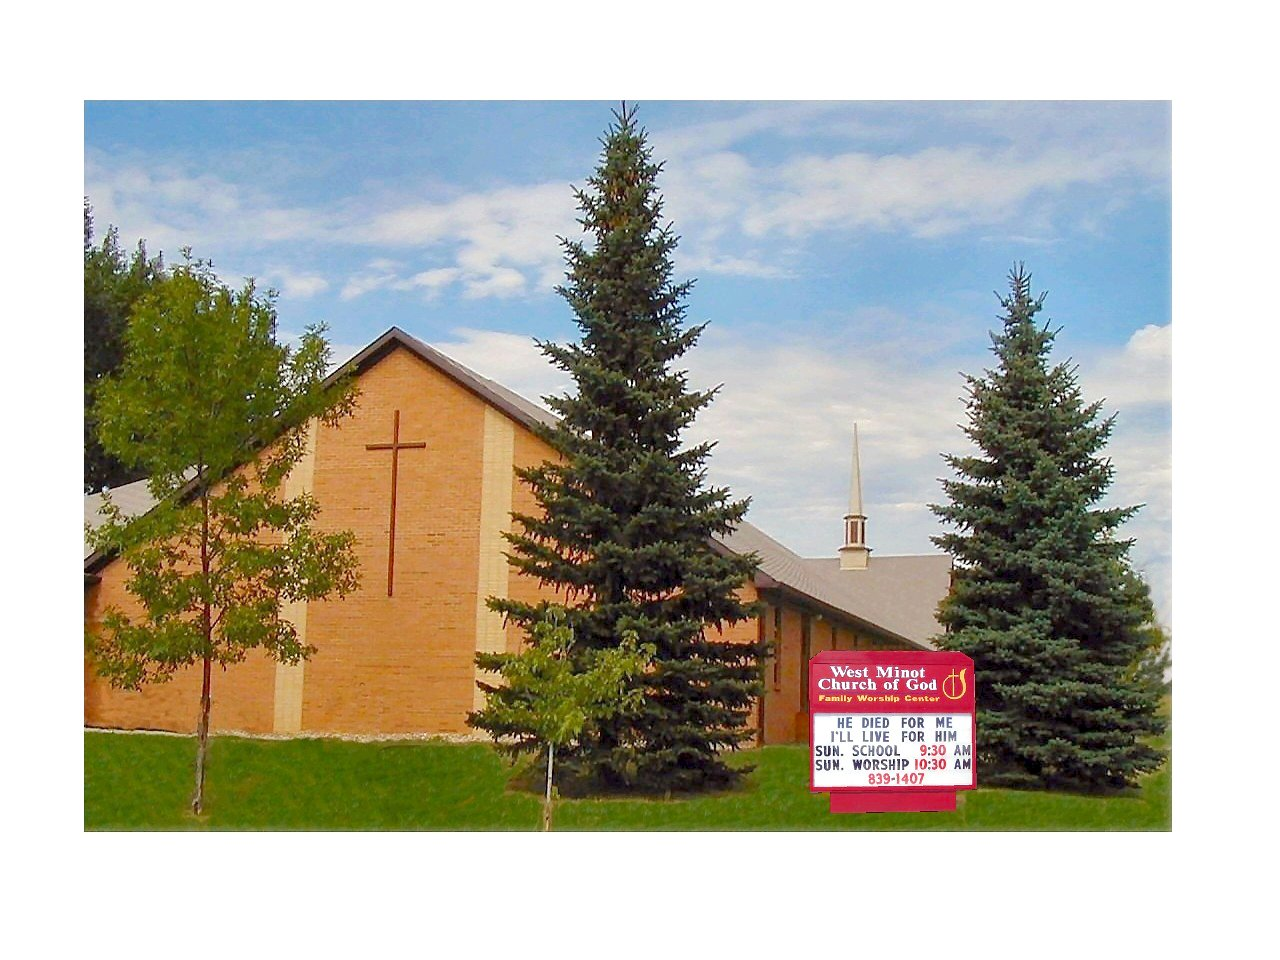 West Minot Family Worship Center 1105 16th St NW, Minot, ND 58703